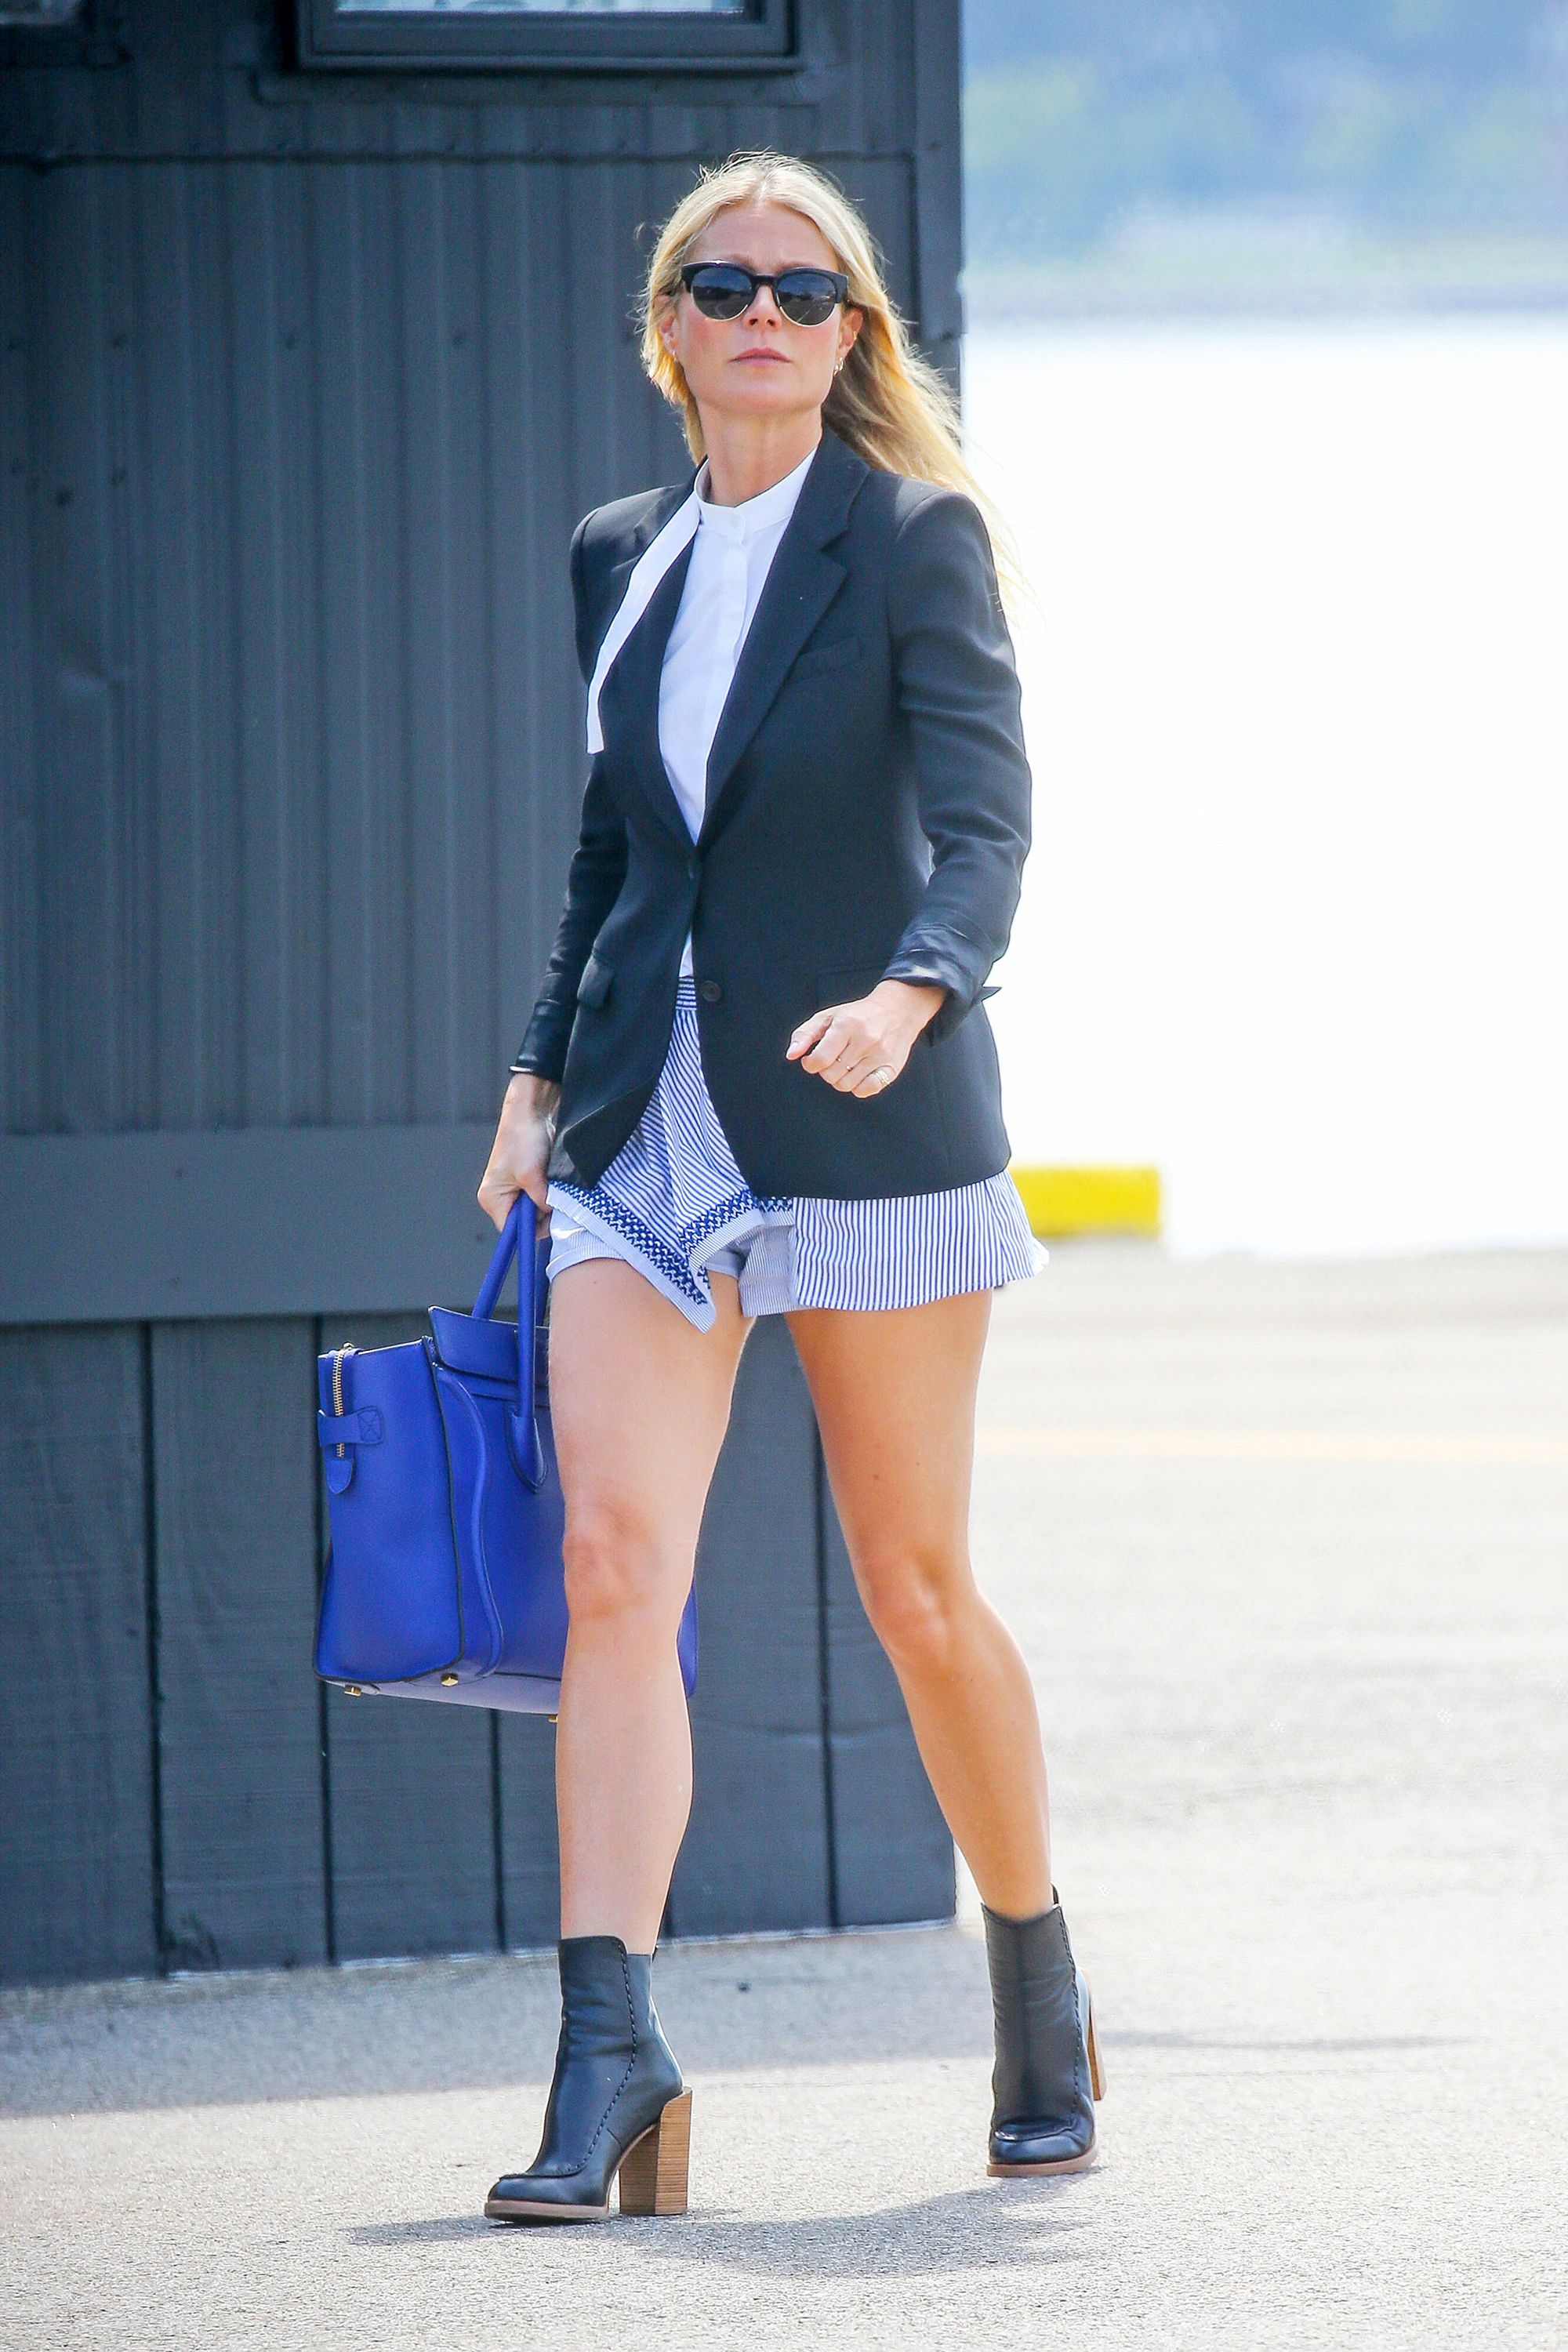 Paltrow gwyneth street style summer fotos